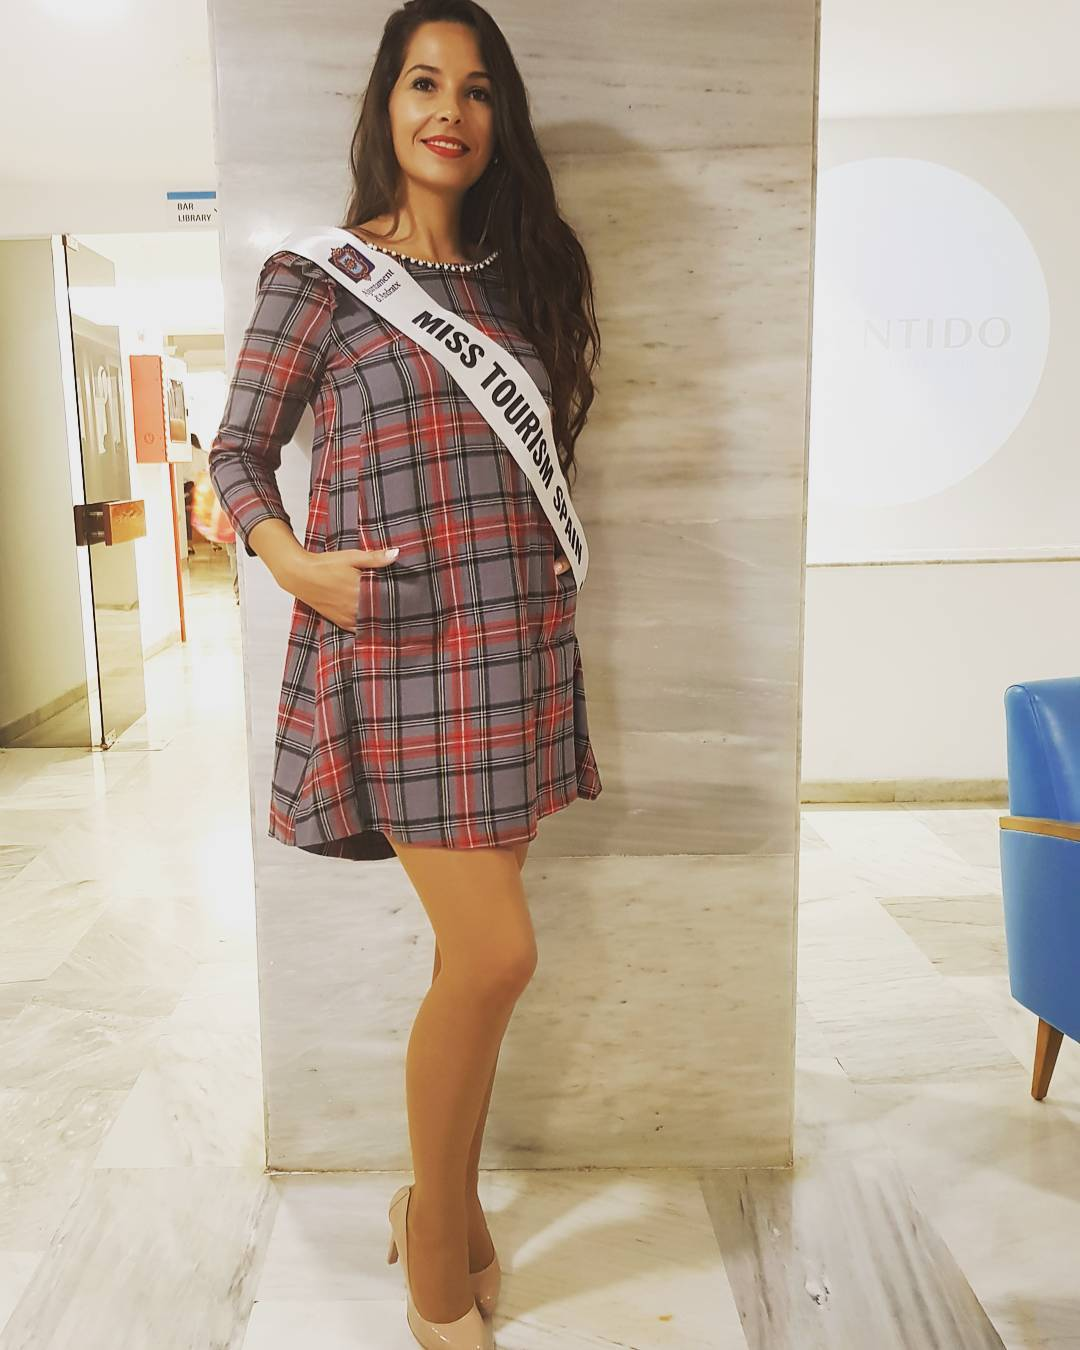 rafaella candida, top 15 de miss tourism 2017/2018. 23966715